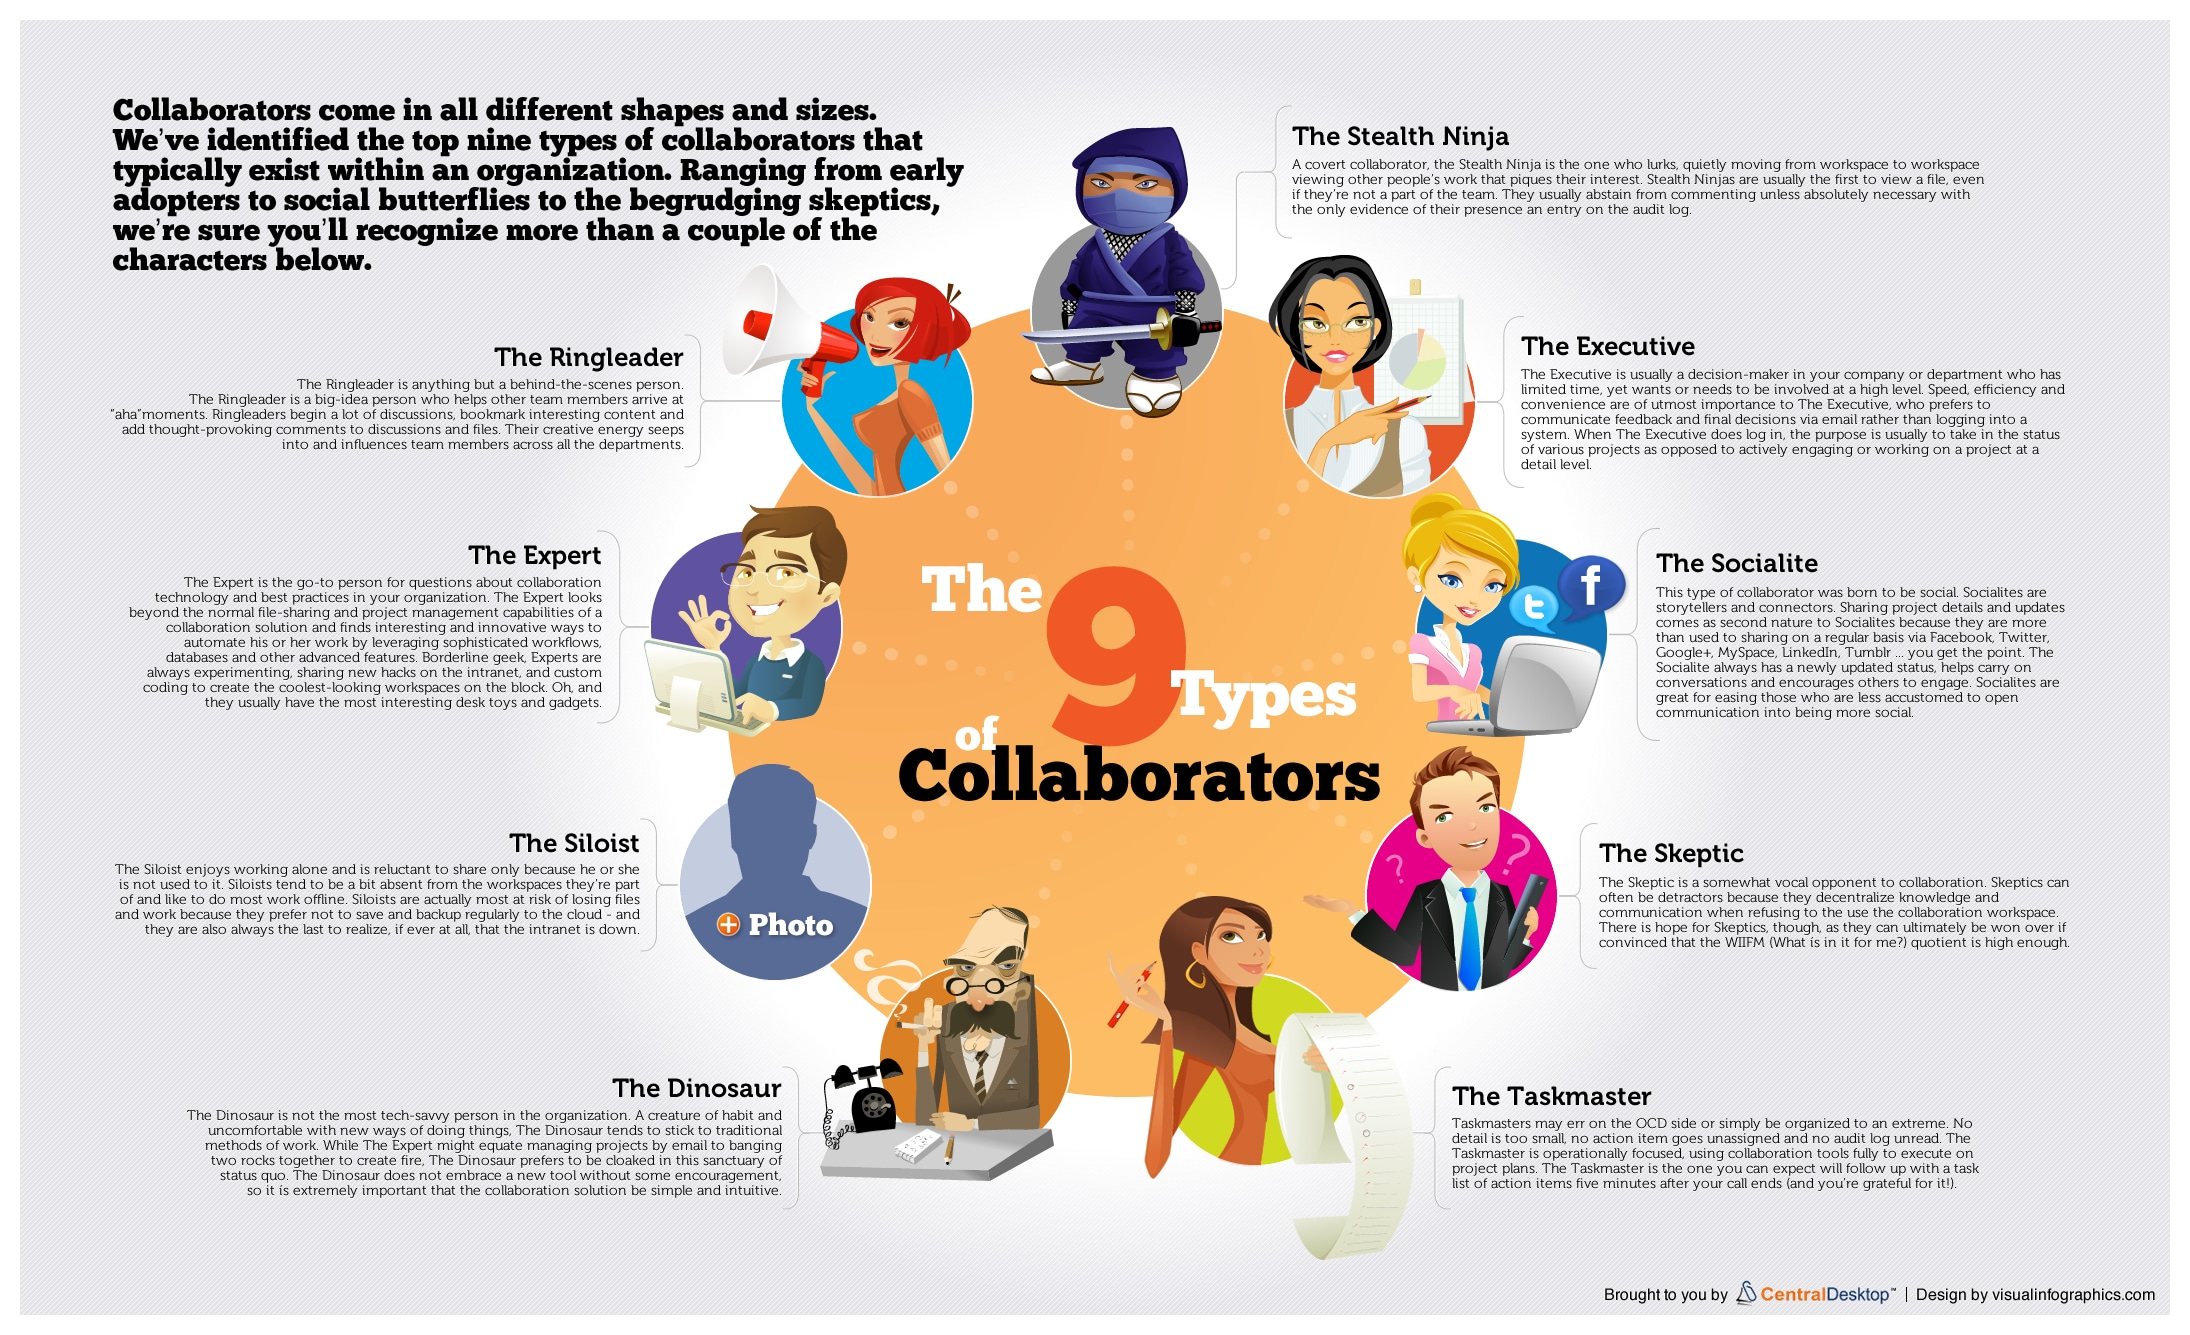 Top 9 Collaboration Types You Will Find In Every Company [Infographic]